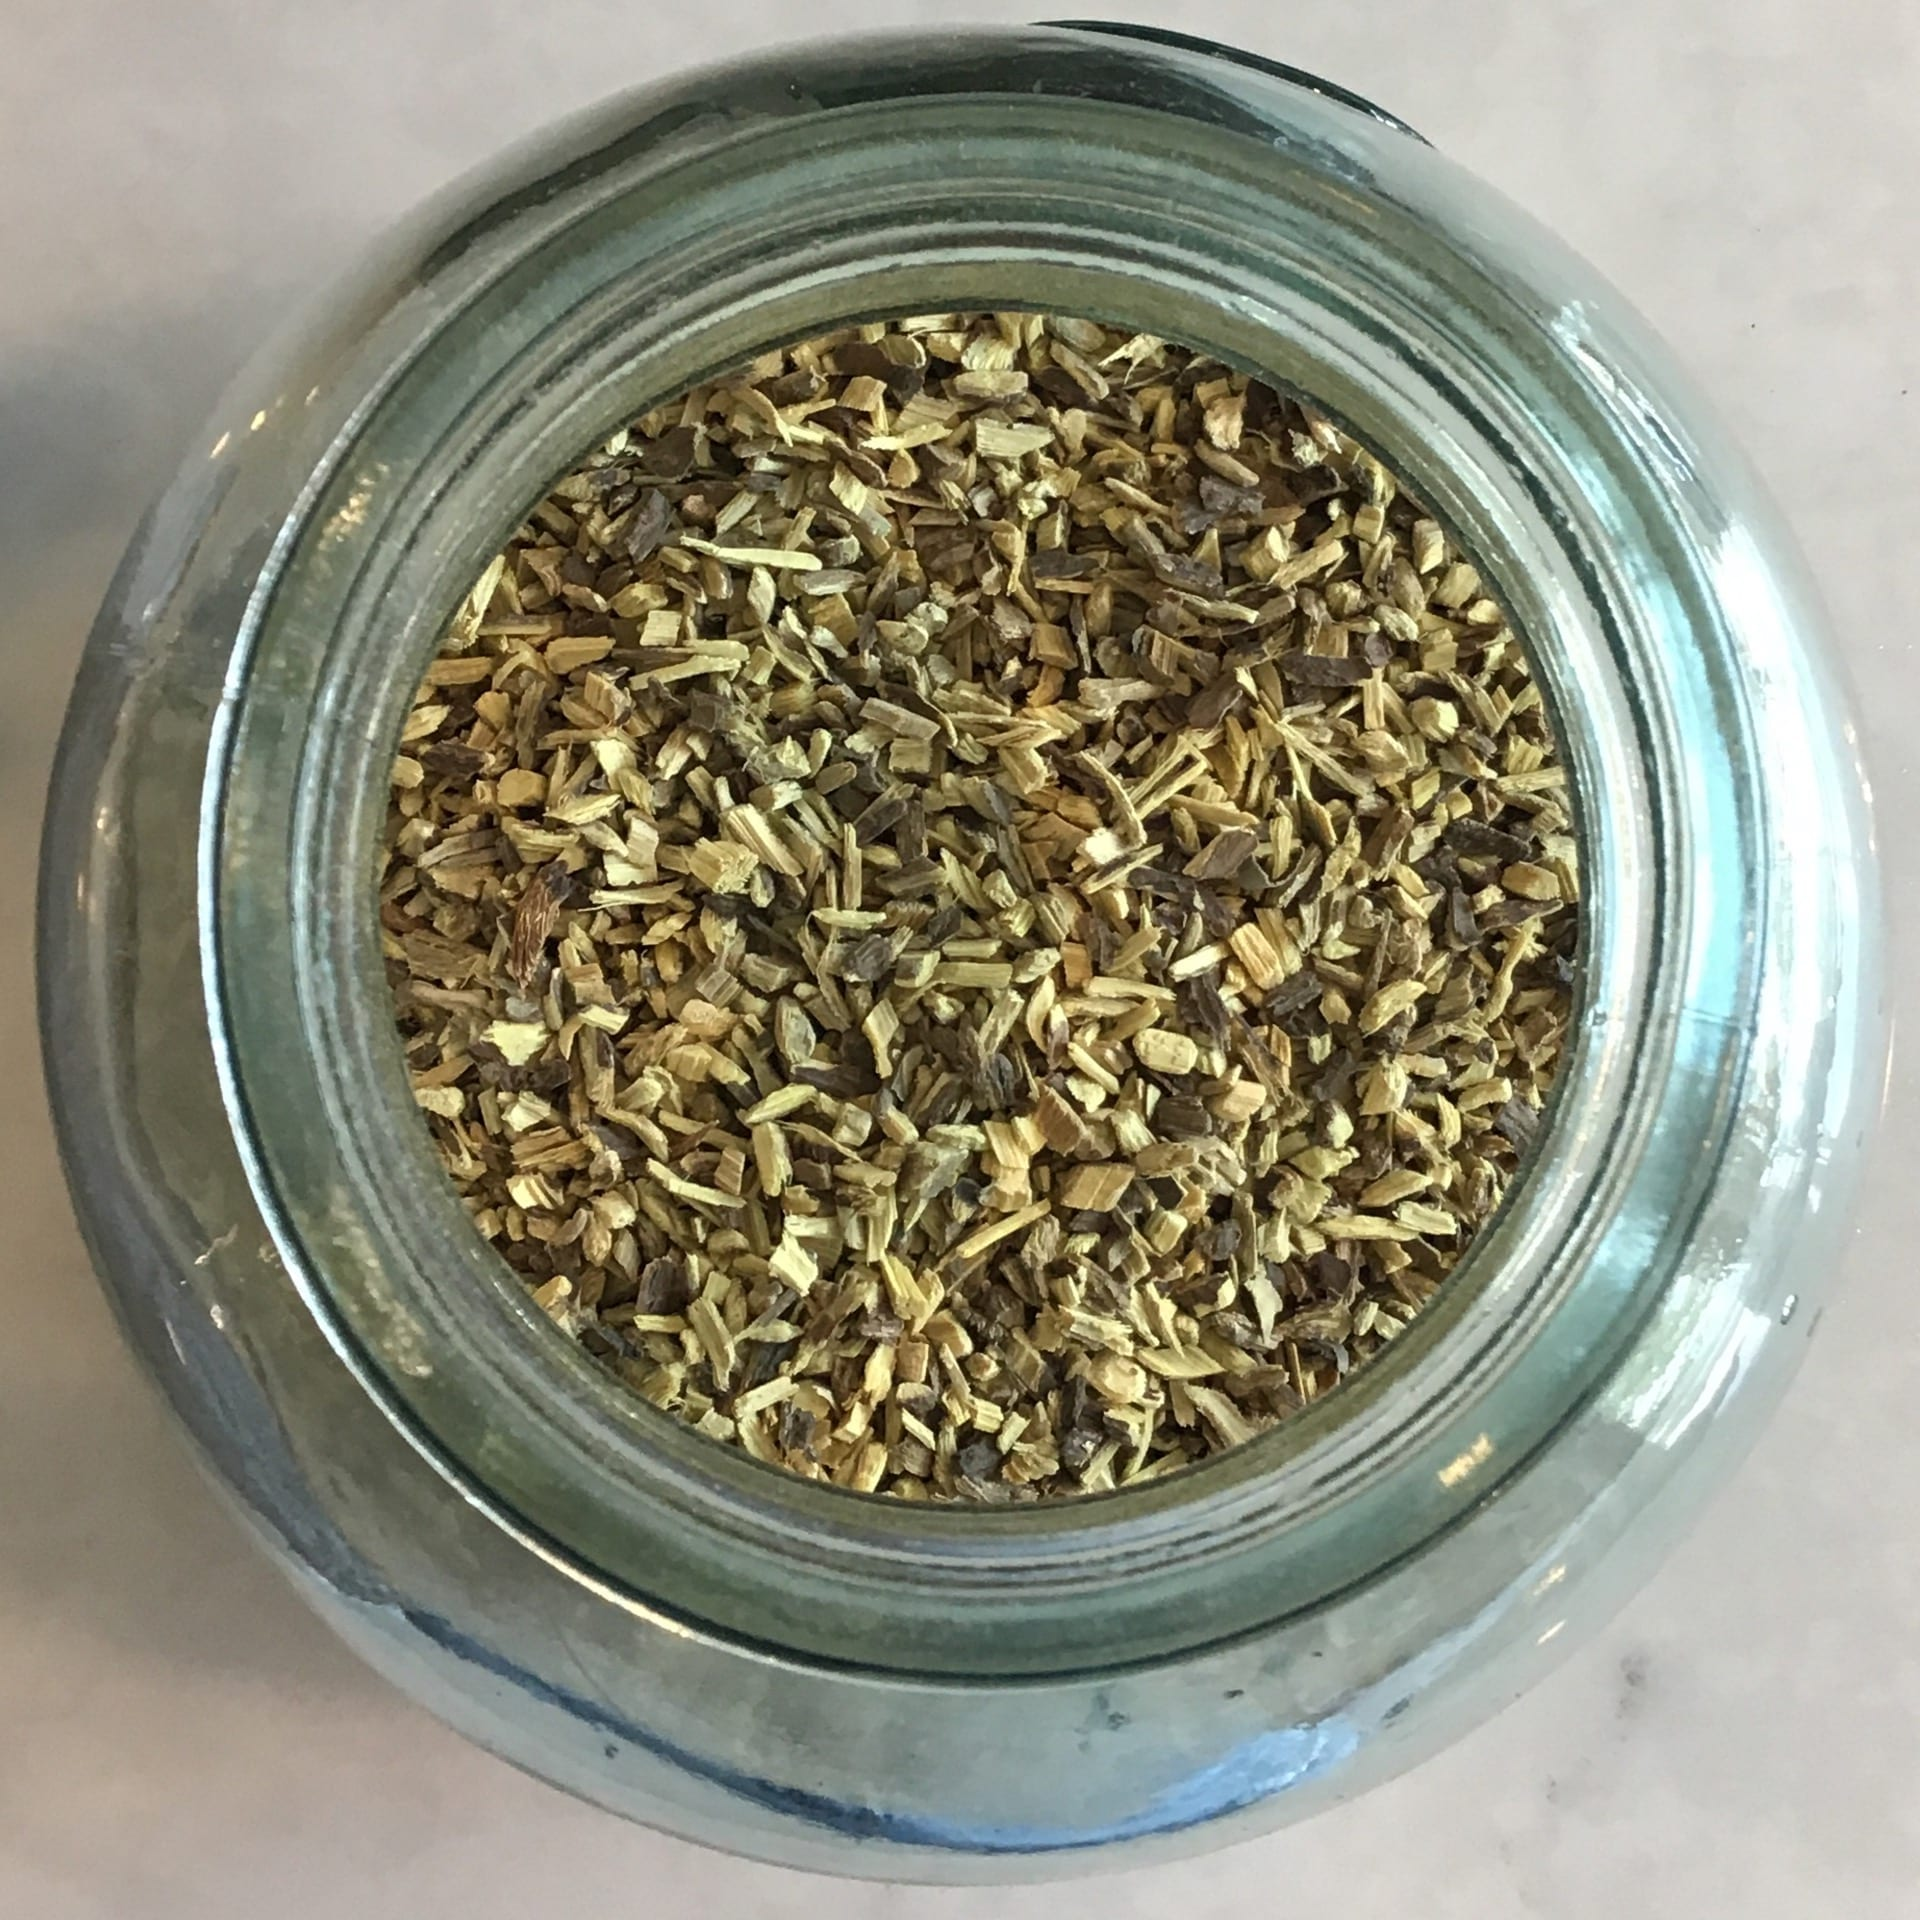 Purchase Organic Licorice Root by the ounce